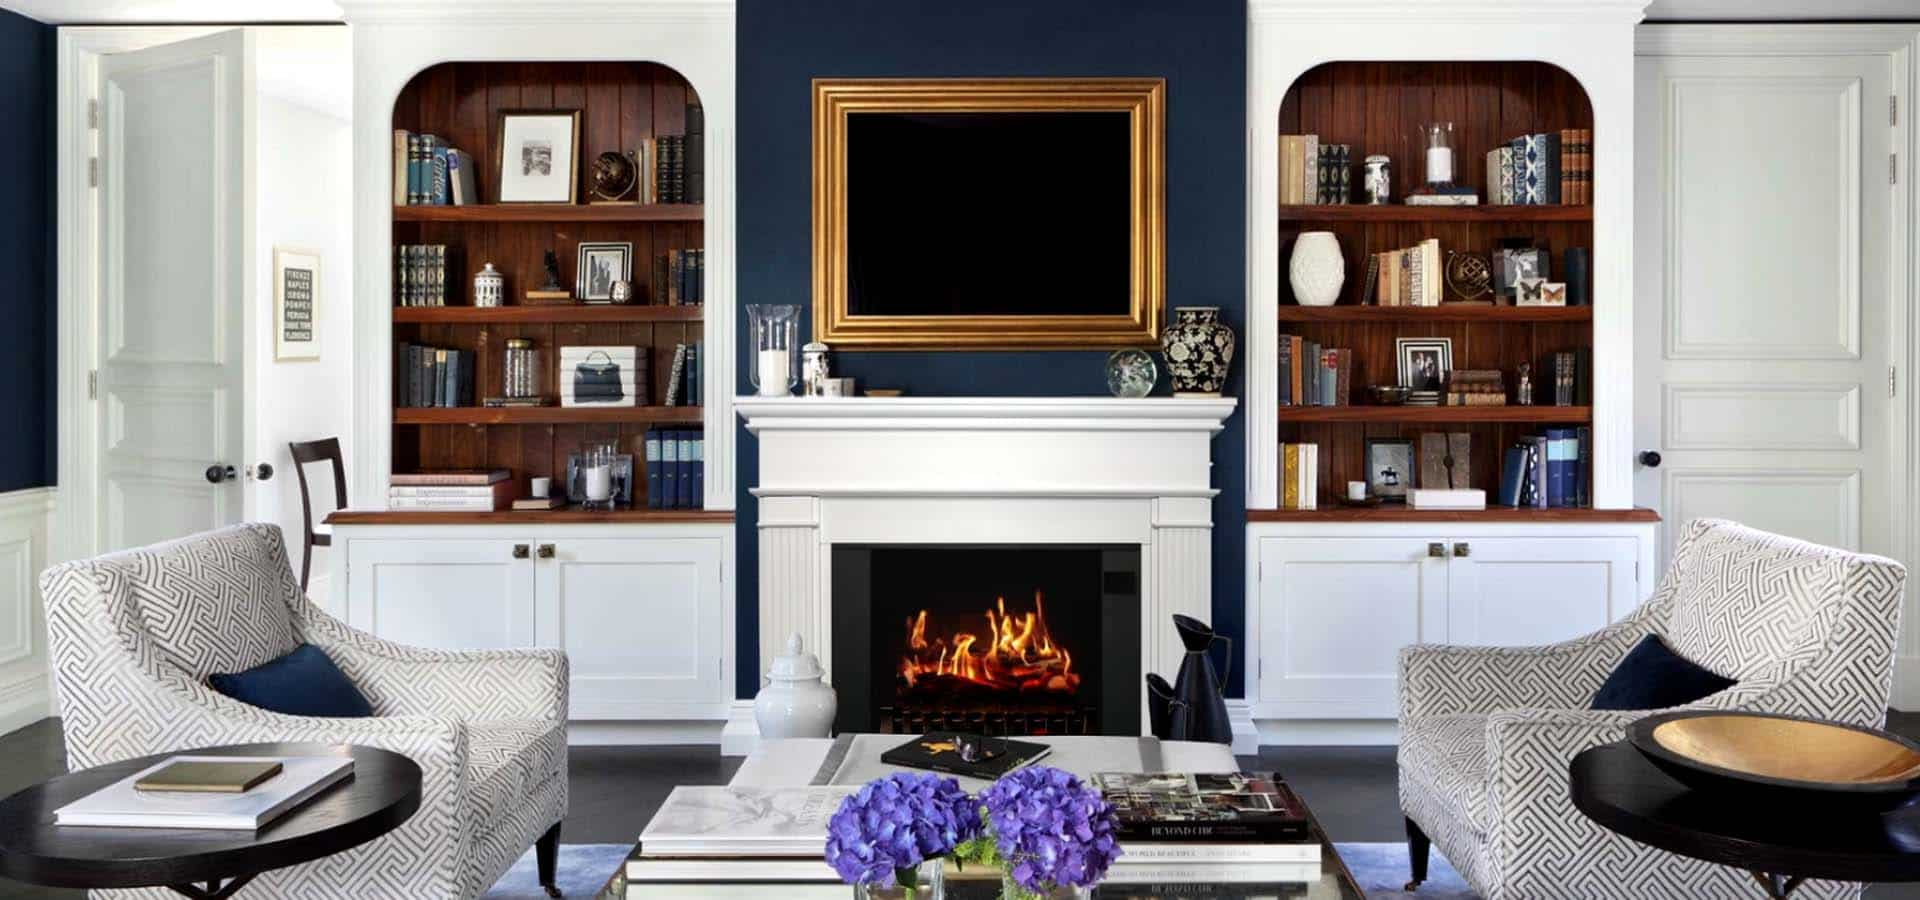 reset my electric fireplace